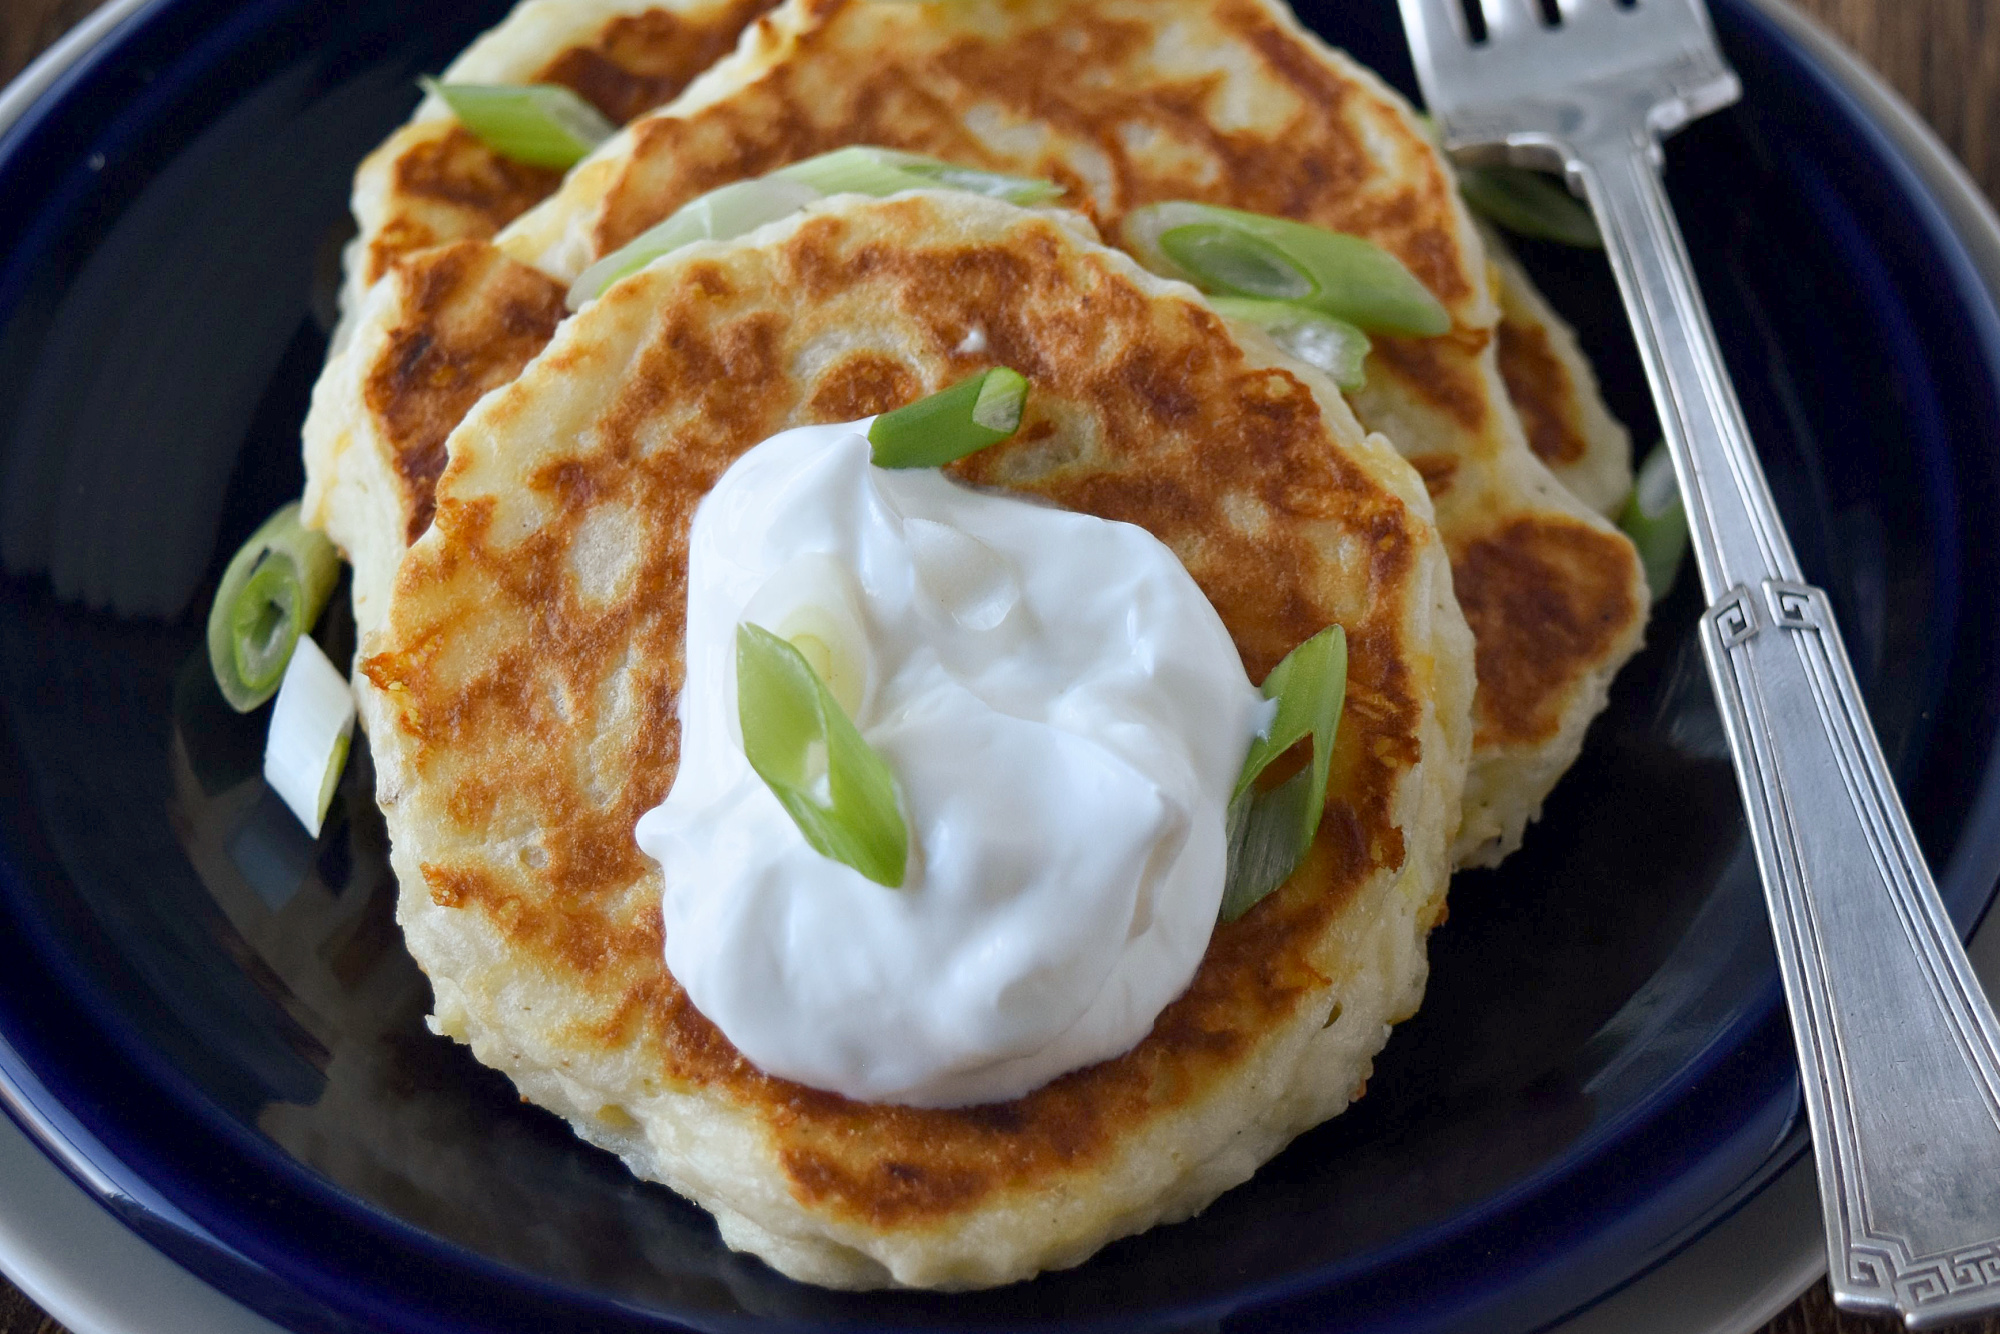 Nana's Potato Pancakes is our family's version of an Americanized boxty. Made with leftover mashed potatoes, they whip up in no time for a delicious and fun side dish or brunch recipe. #OurFamilyTable